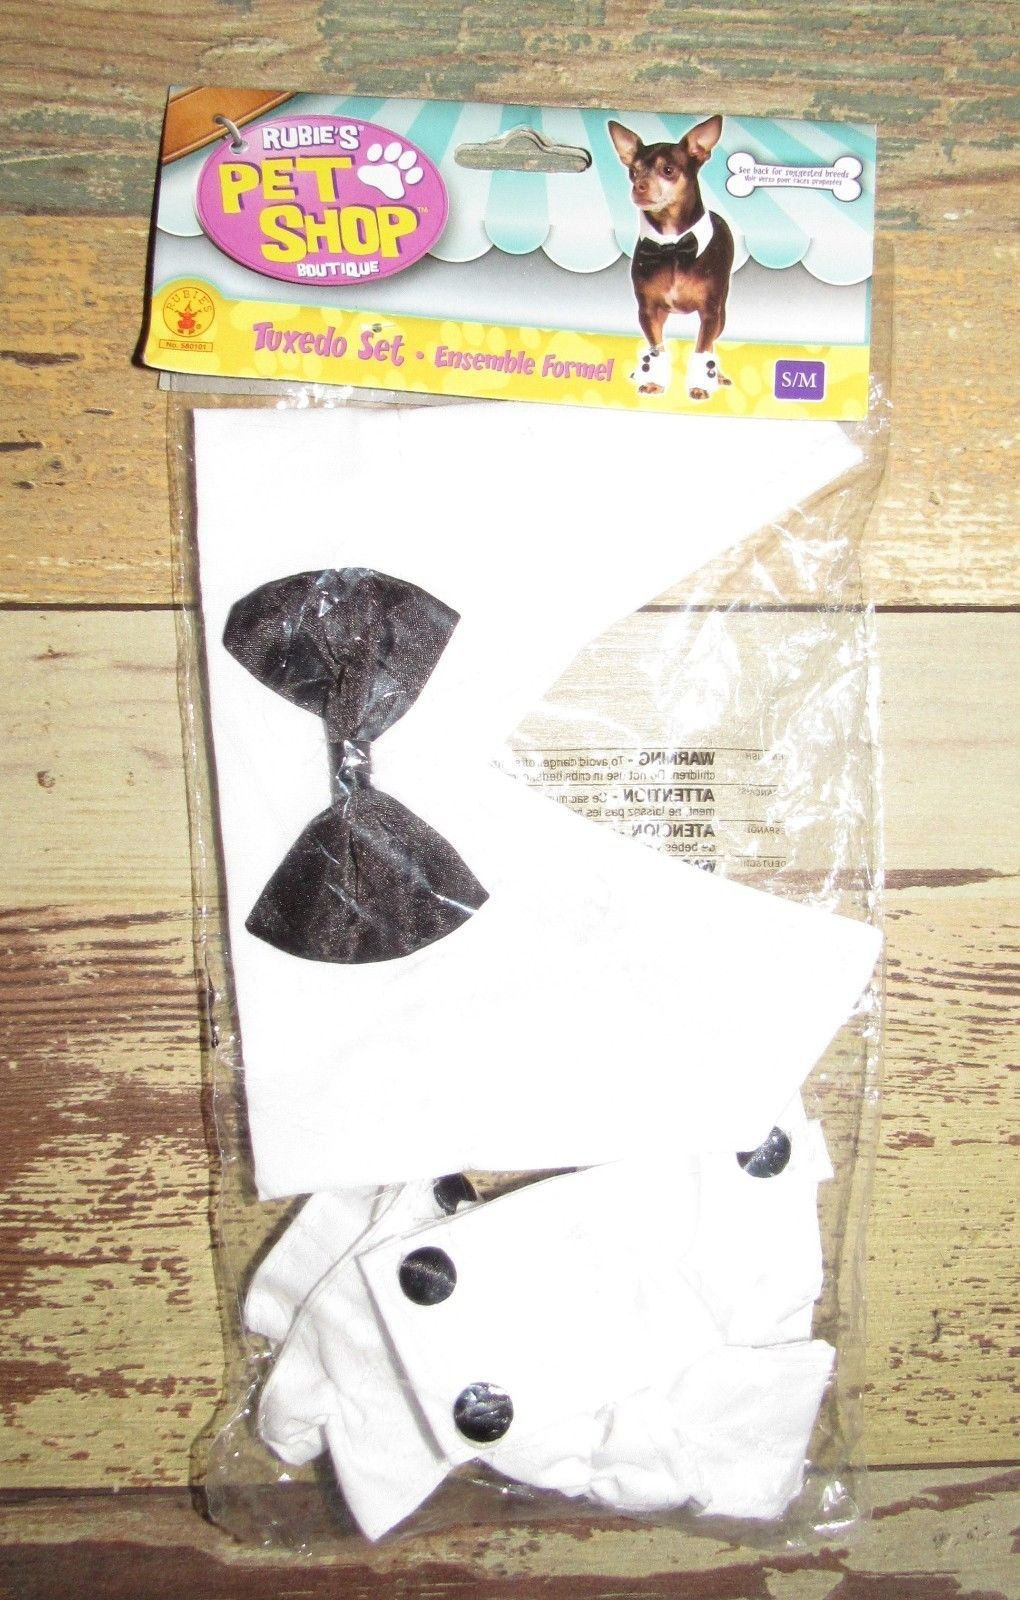 Pet Shop Boutique Animal Tuxedo Set Sz S/M New